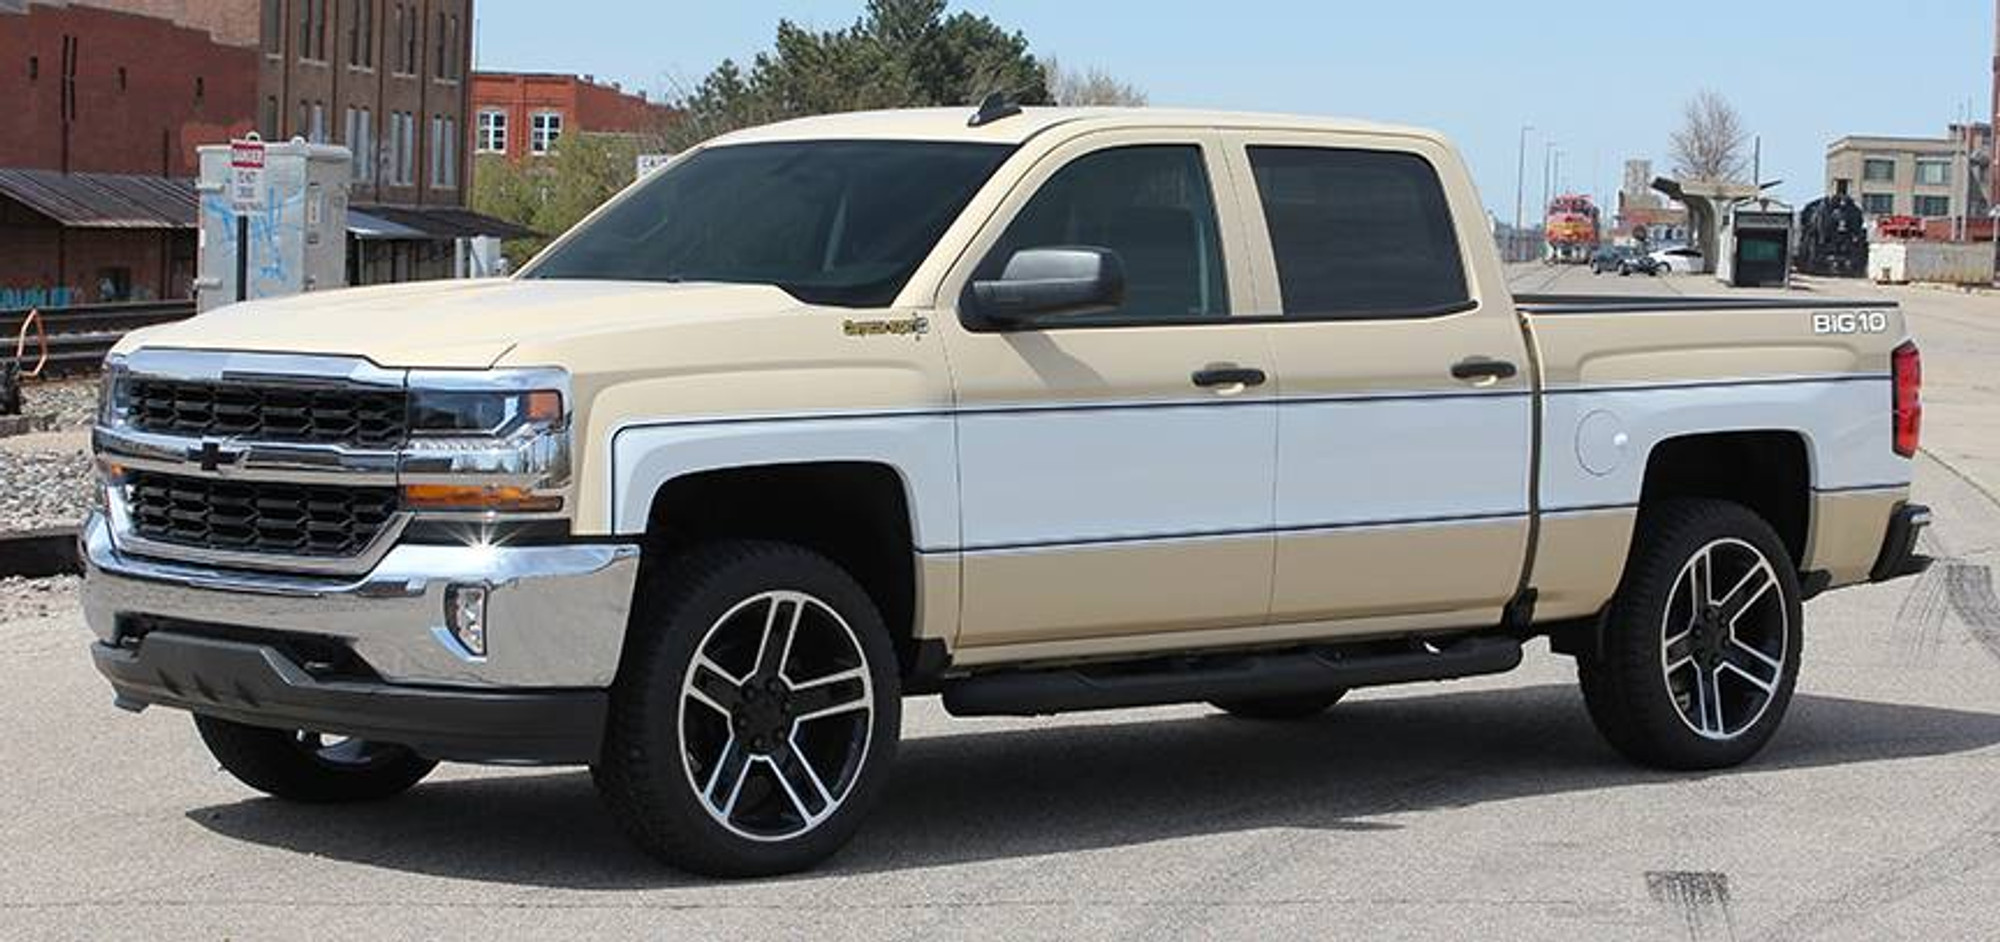 hight resolution of 2014 2019 chevy silverado retro cheyenne graphic kit angled front side view